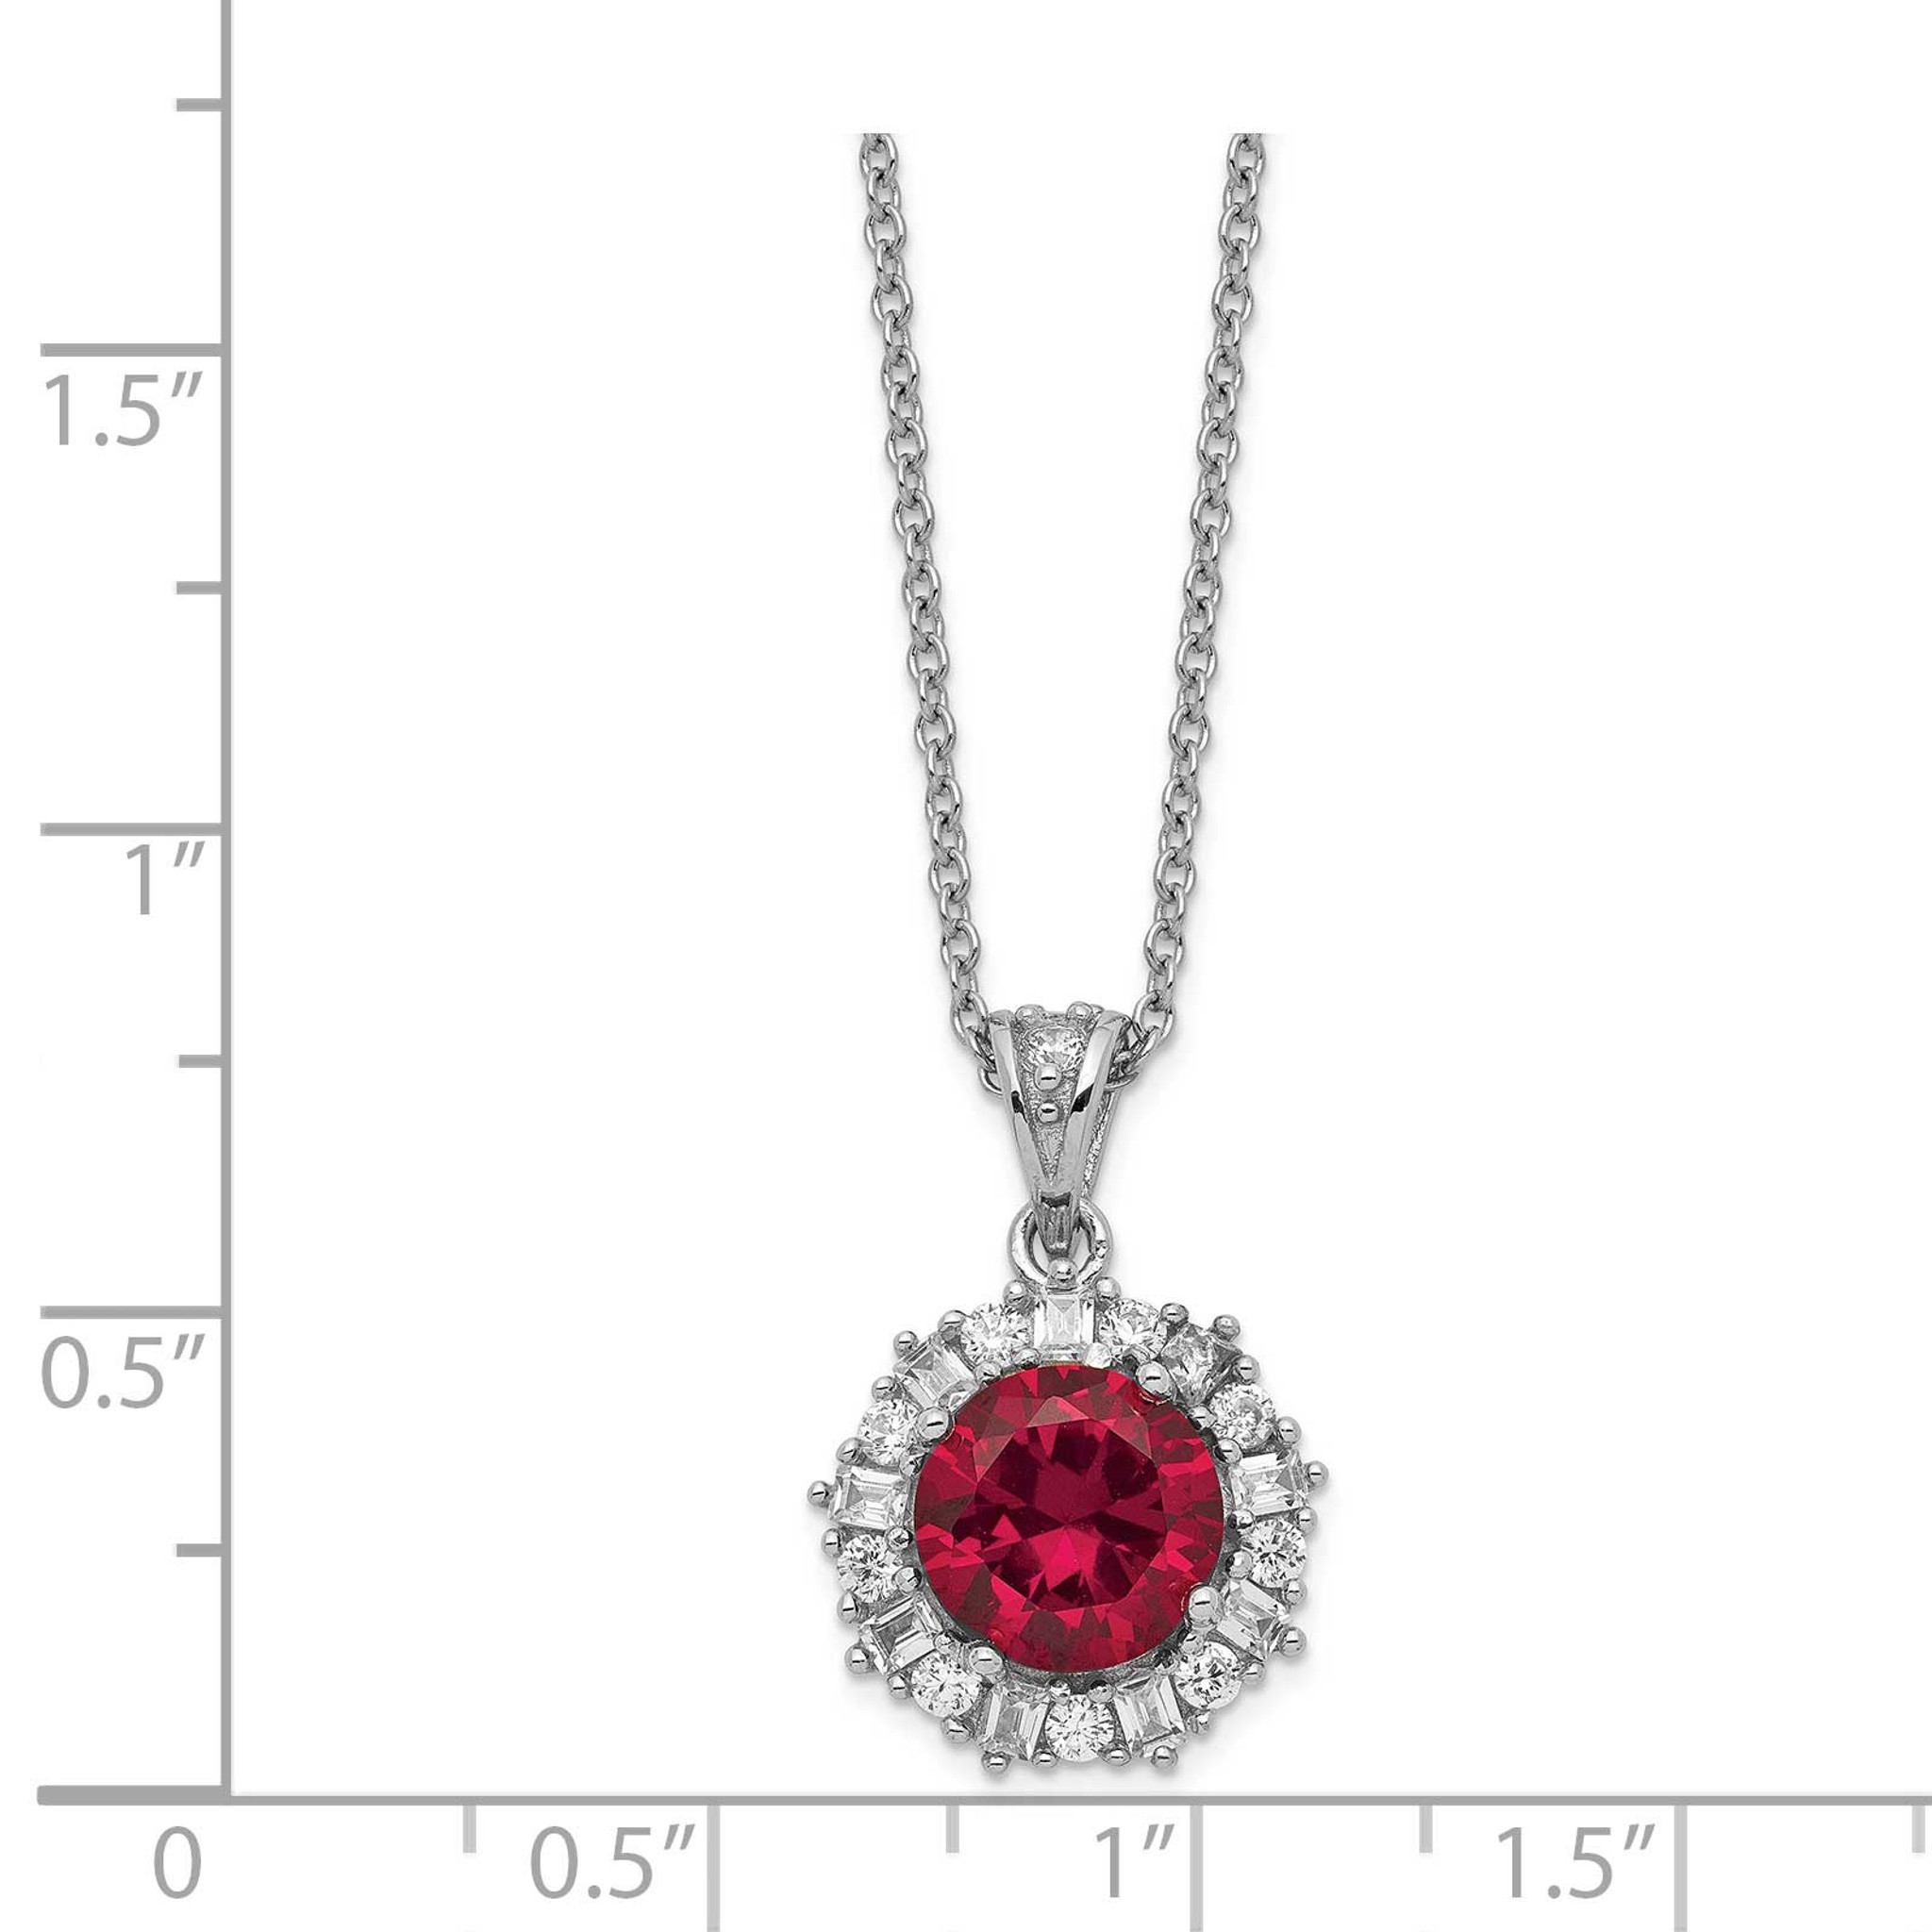 Jewelry Necklaces Necklace with Pendants Cheryl M Sterling Silver Lab created Ruby and CZ 18in Necklace